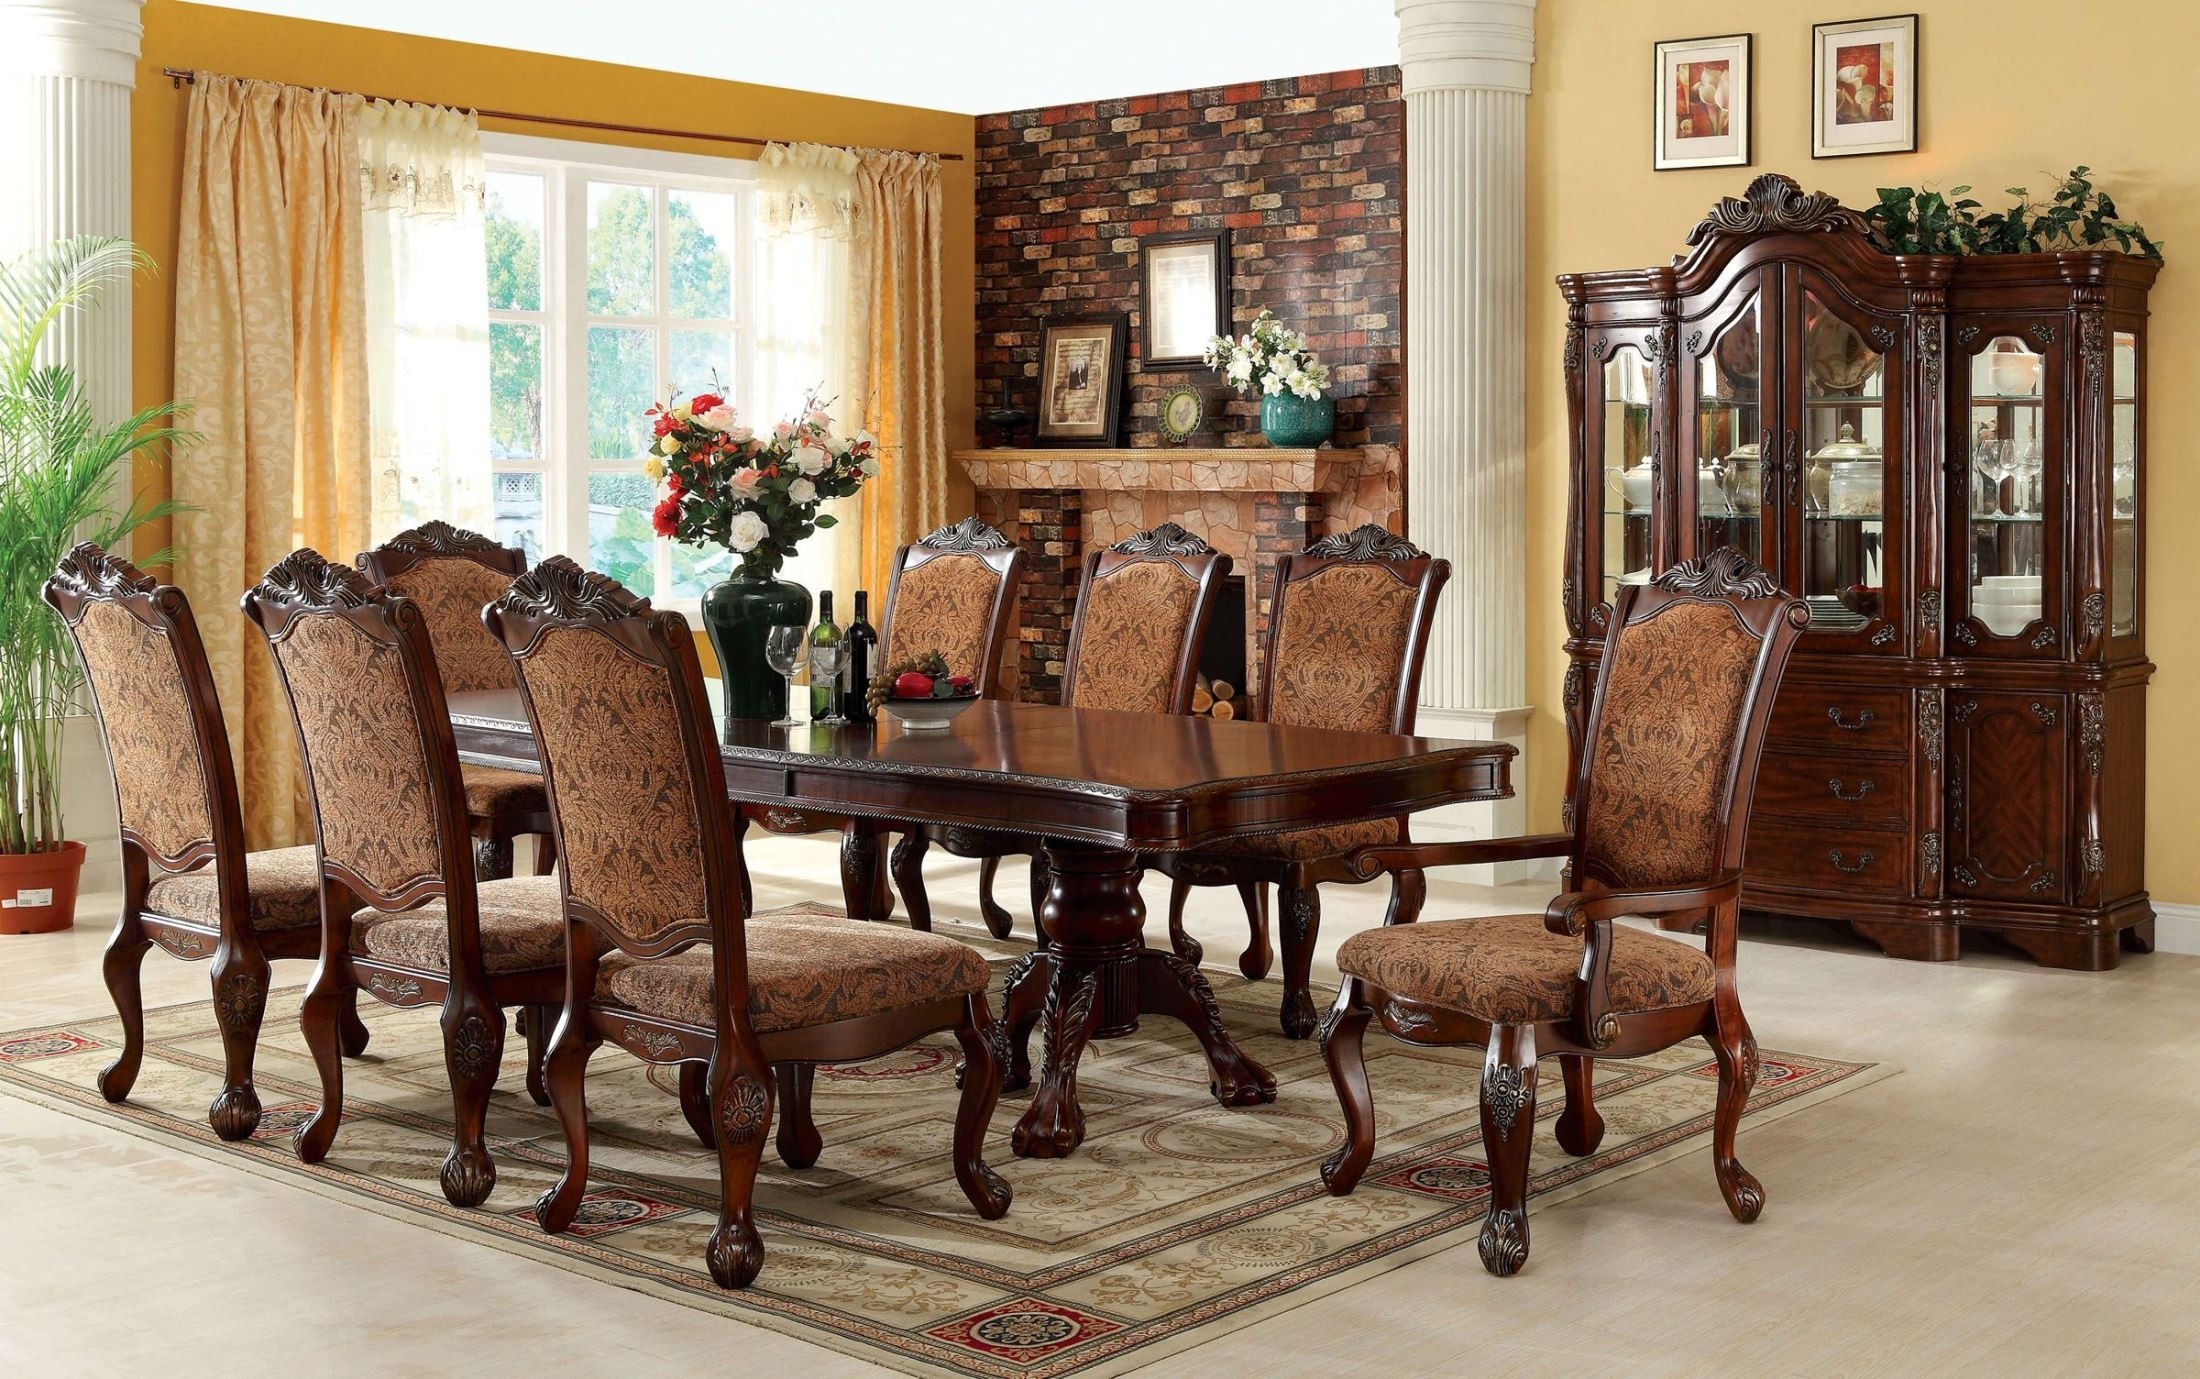 Cromwell antique cherry formal dining room set cm3103t for Formal dining room furniture